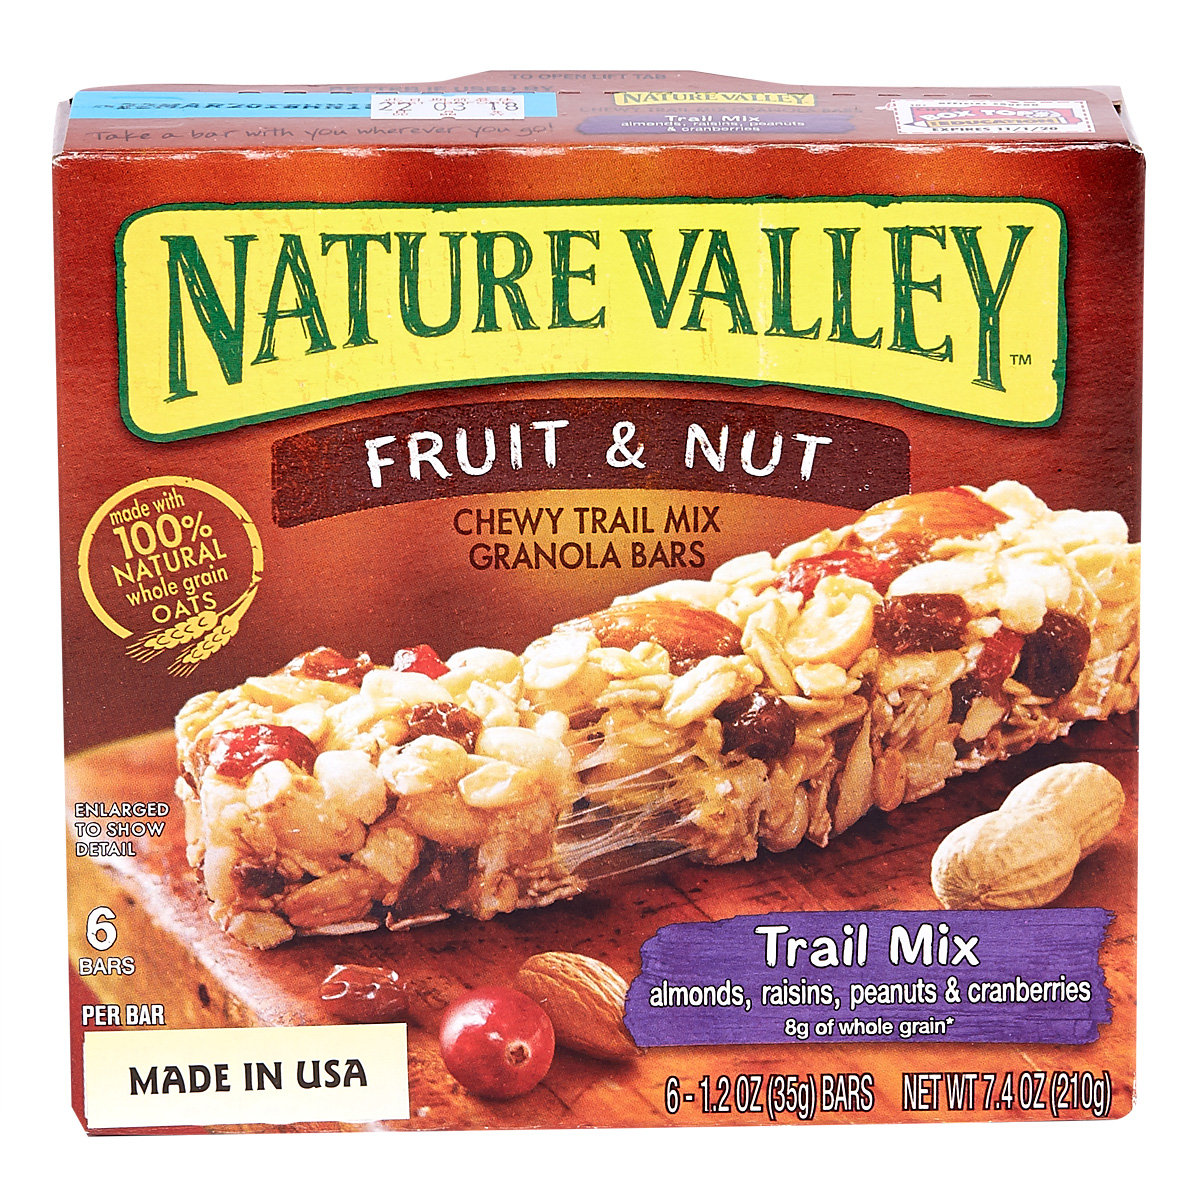 Chewy Granola Bar - Trail Mix Fruit & Nut